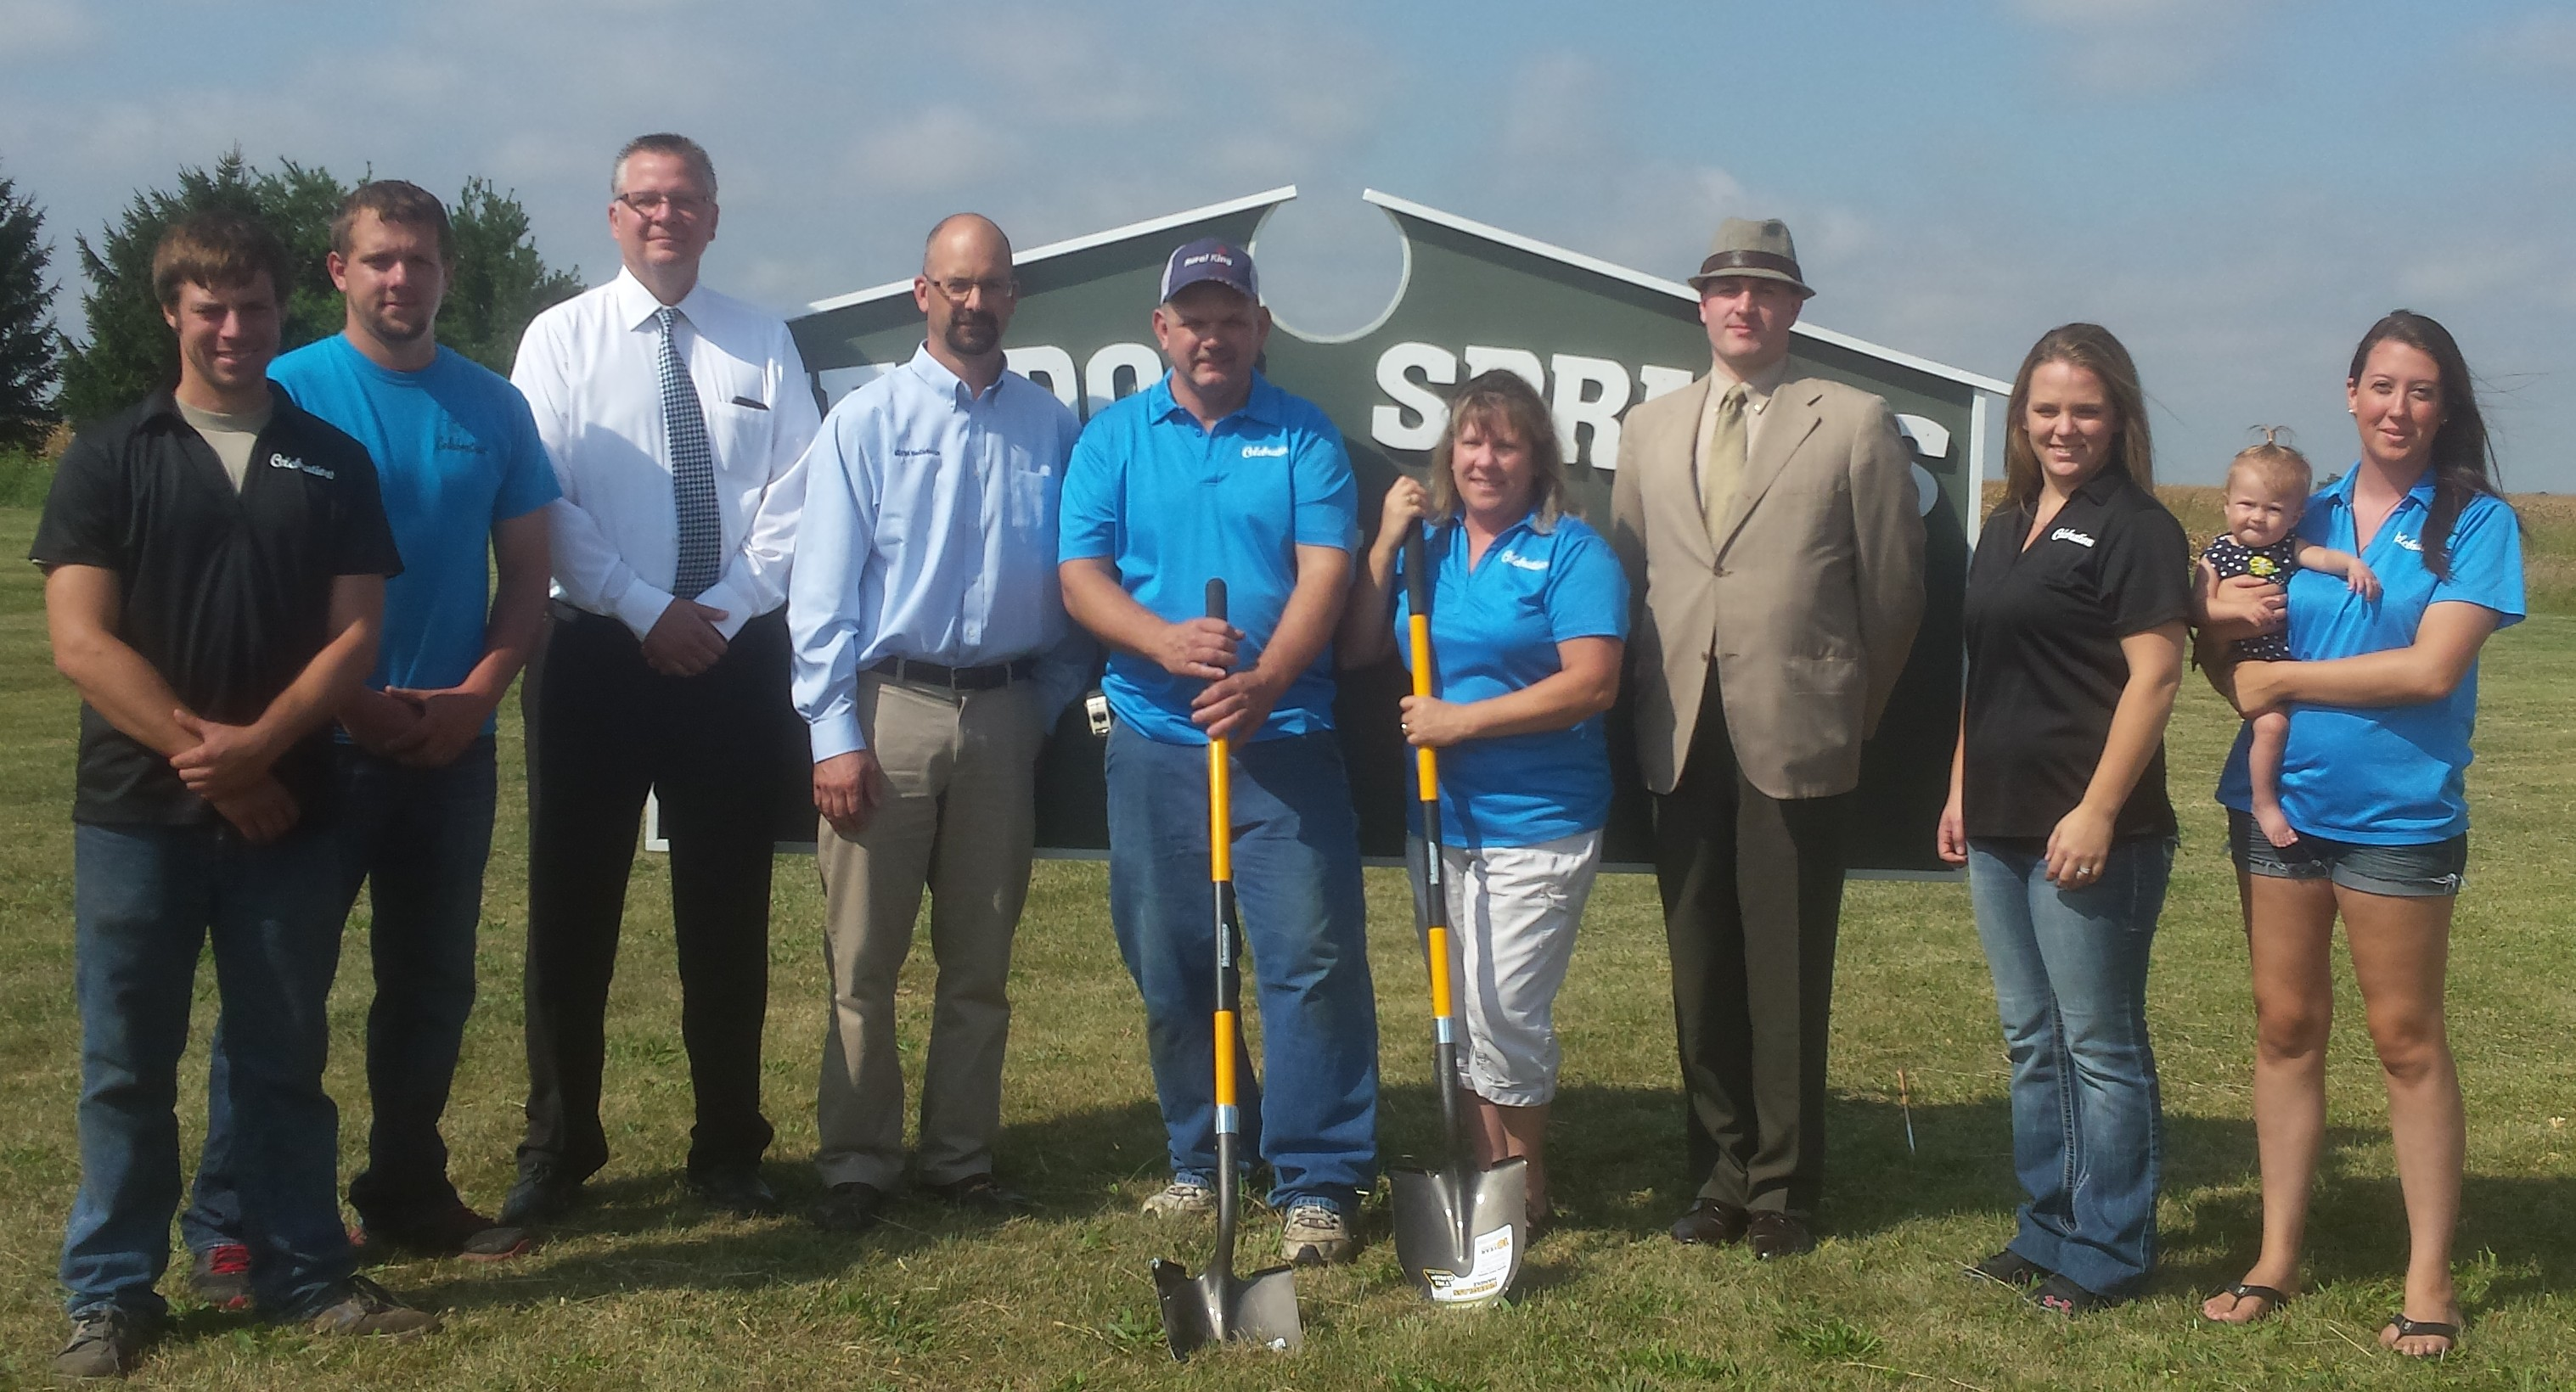 Indiana pulaski county francesville - A New Event And Banquet Center Is Coming To Western Pulaski County Meadow Springs Held A Groundbreaking Friday For A New Facility At The Corner Of U S 421